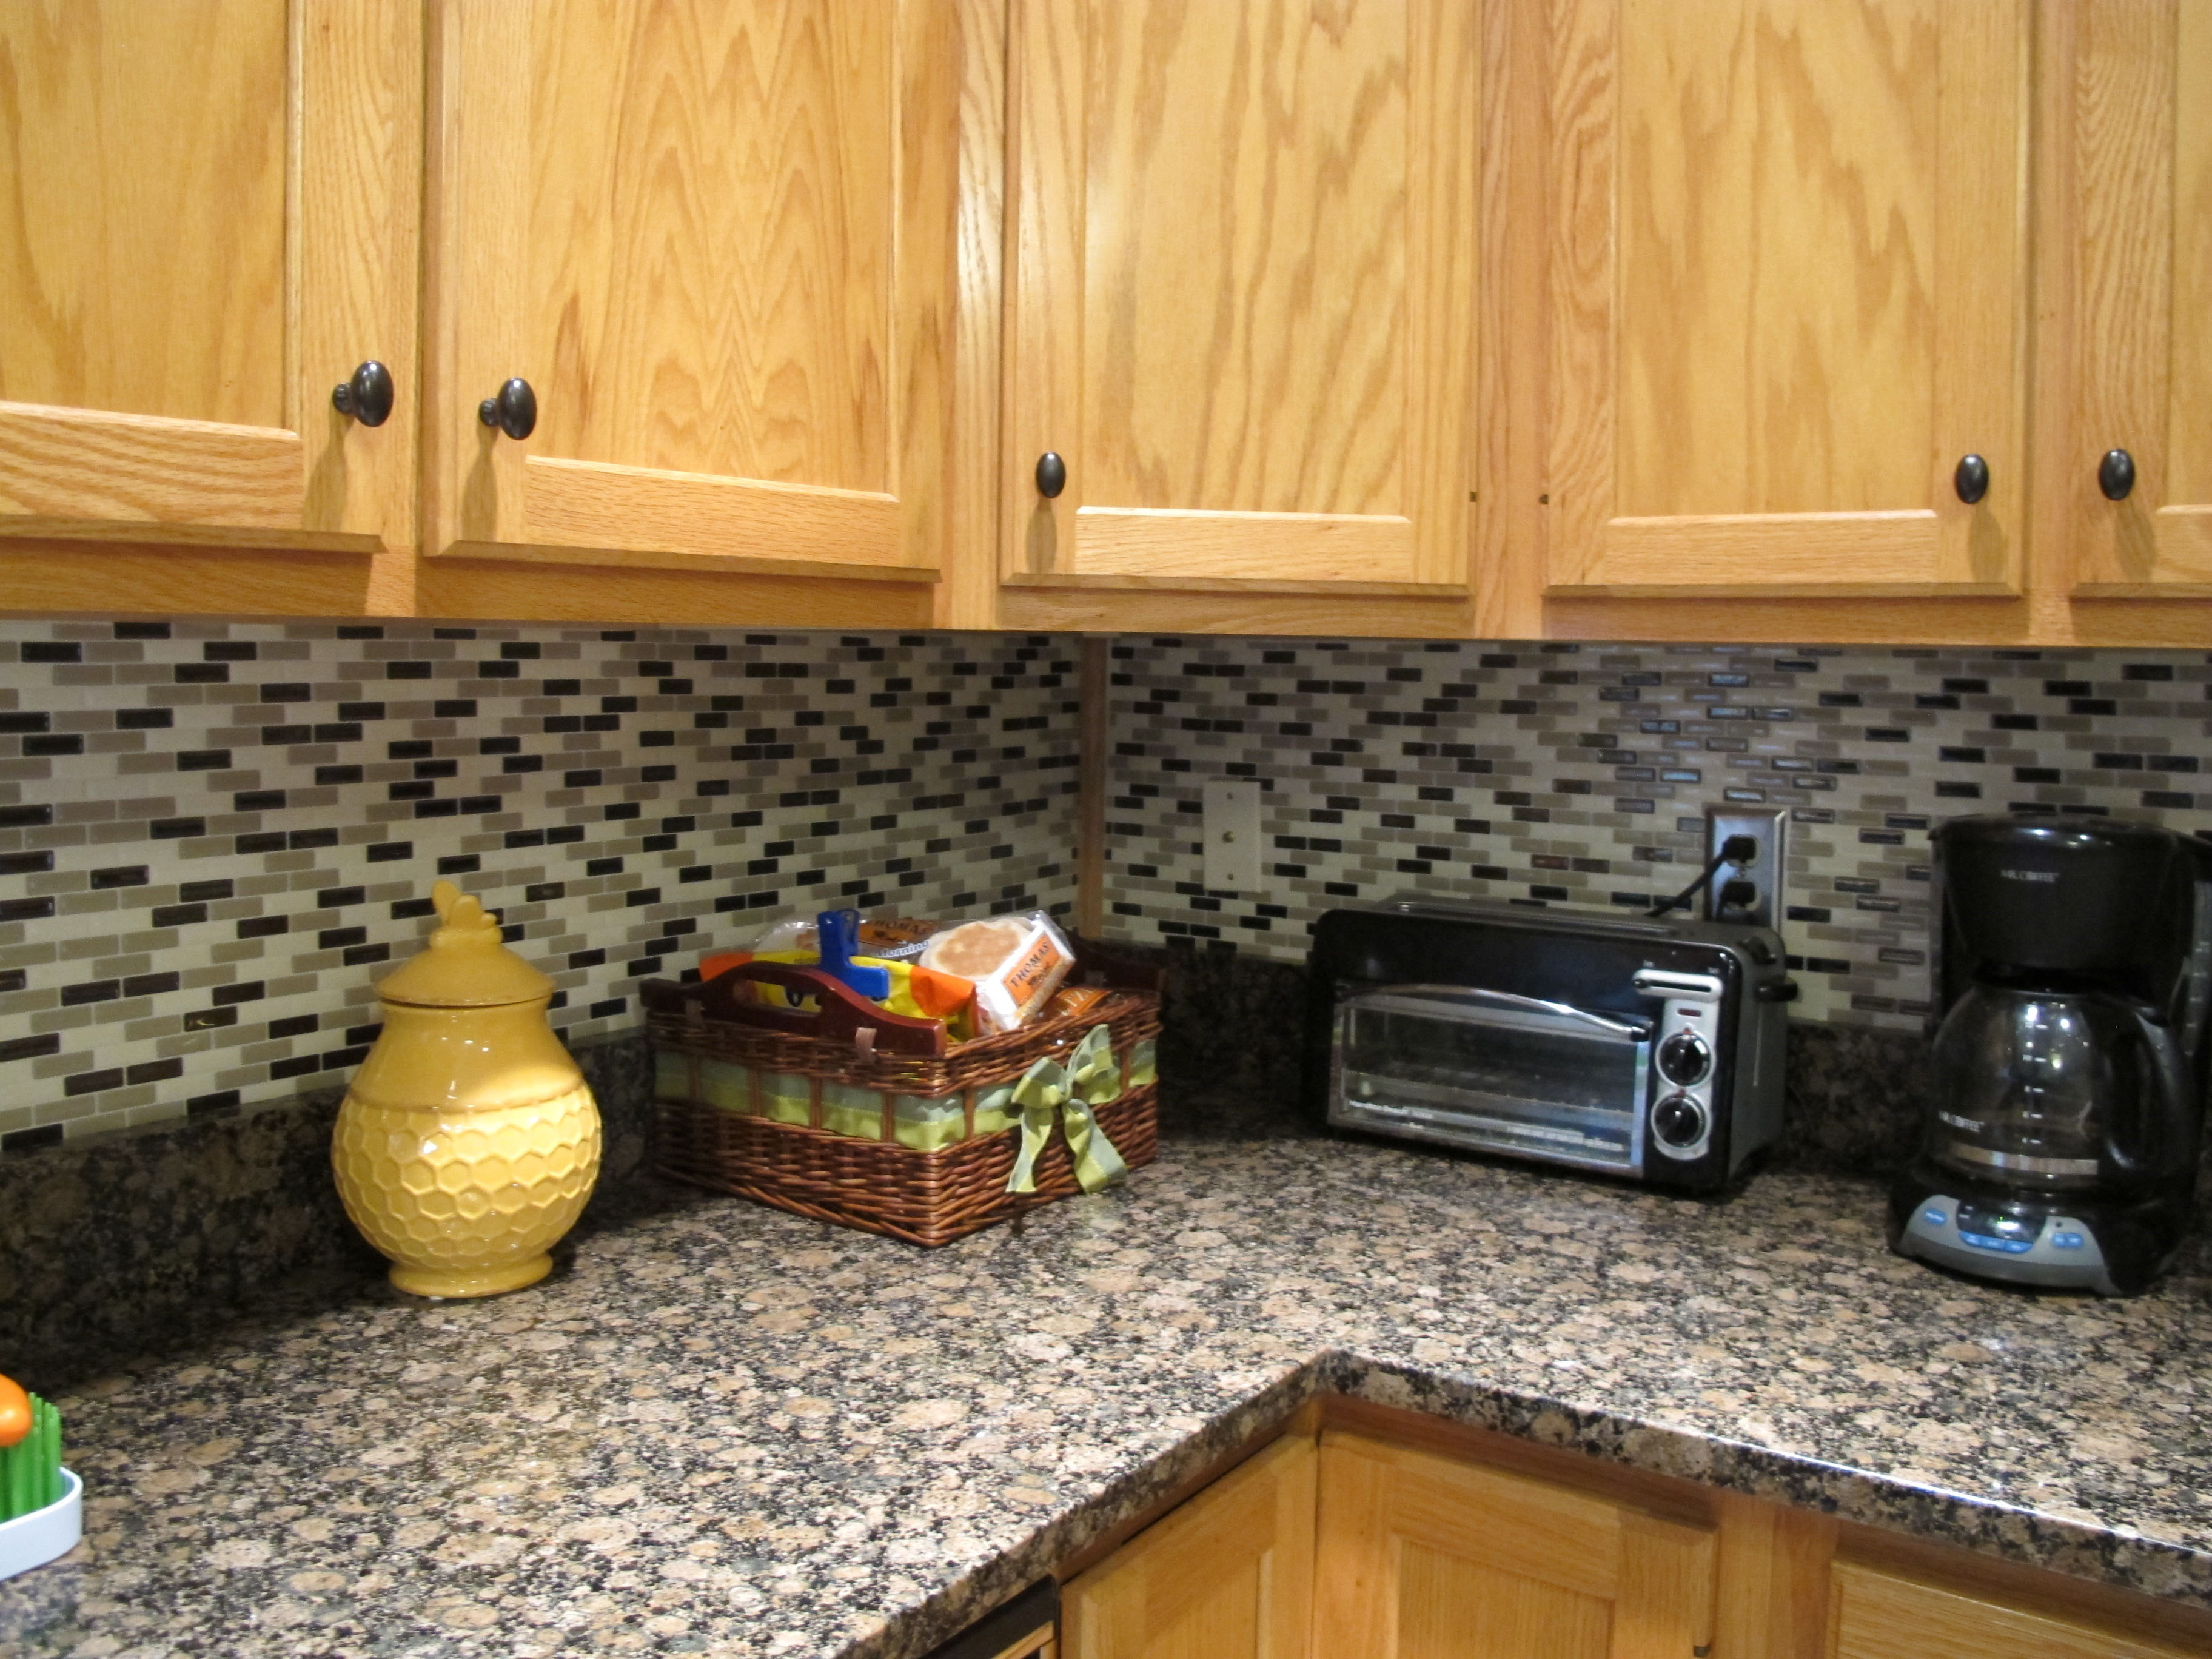 Covering Ugly Kitchen Countertops